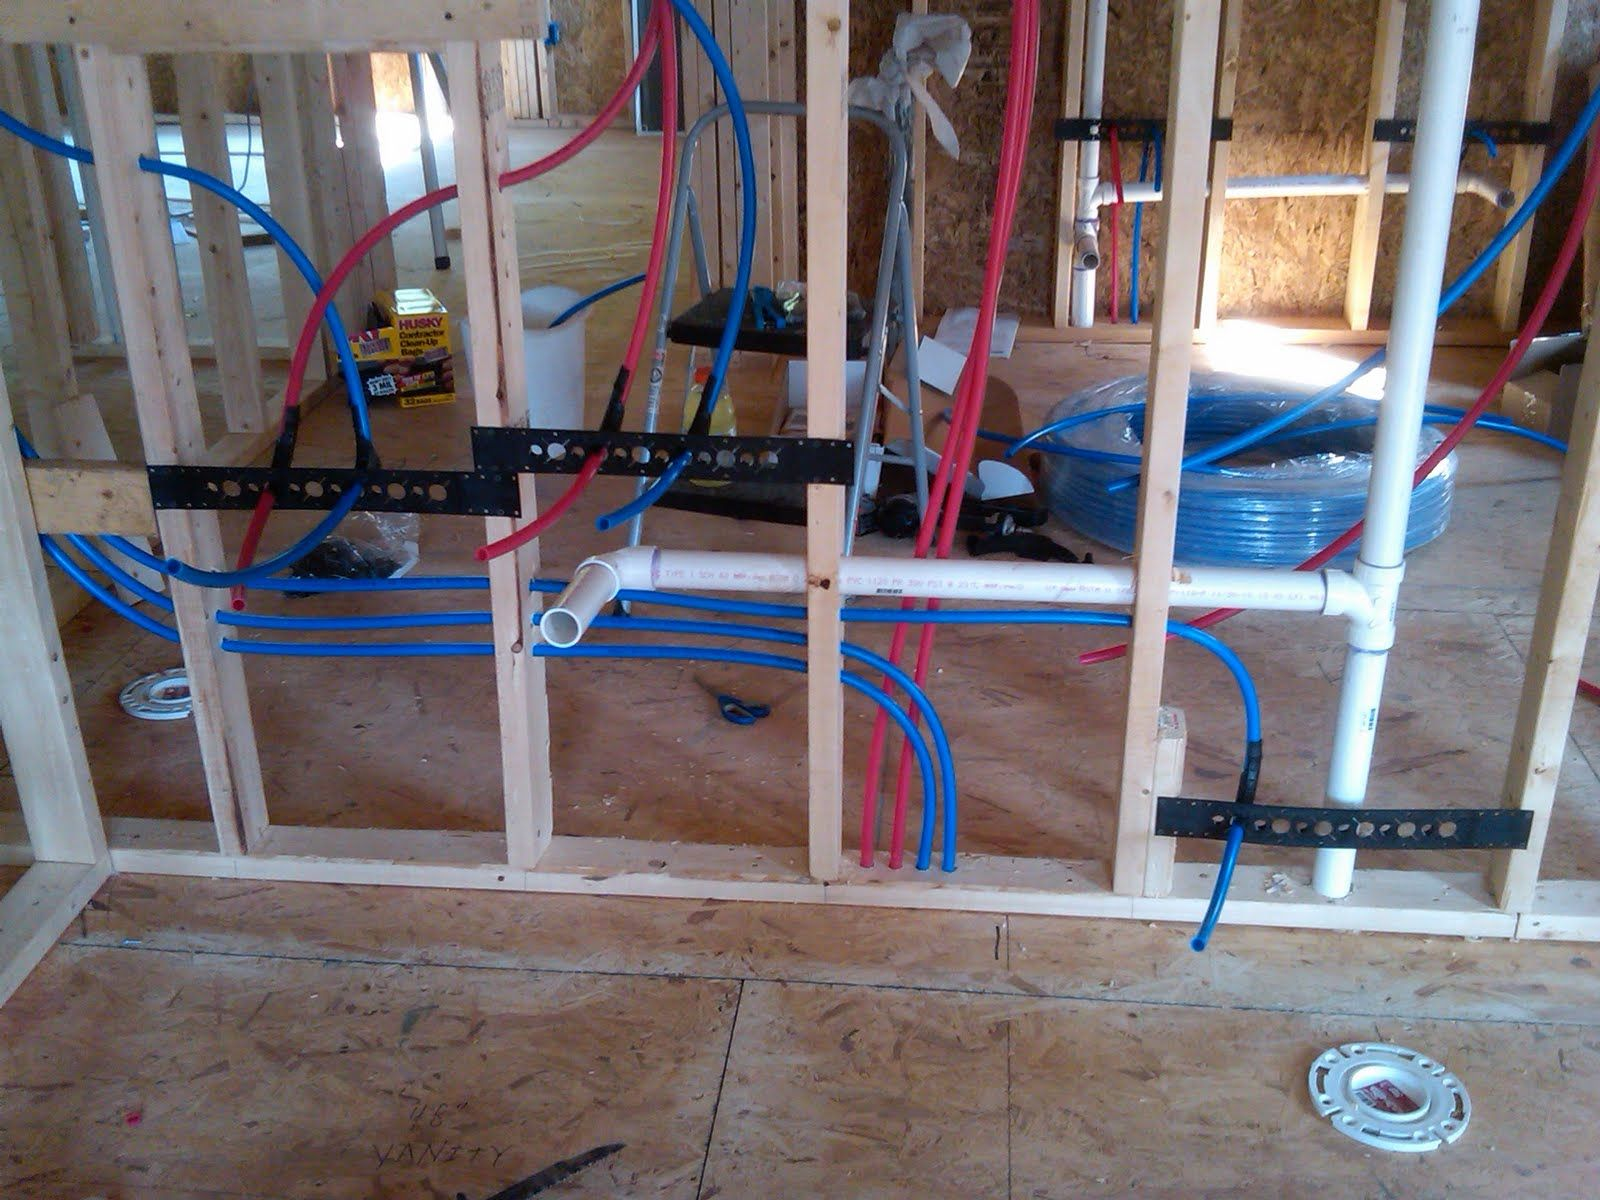 medium resolution of plumbing pex water lines install for toilet sinks drain pipe photo